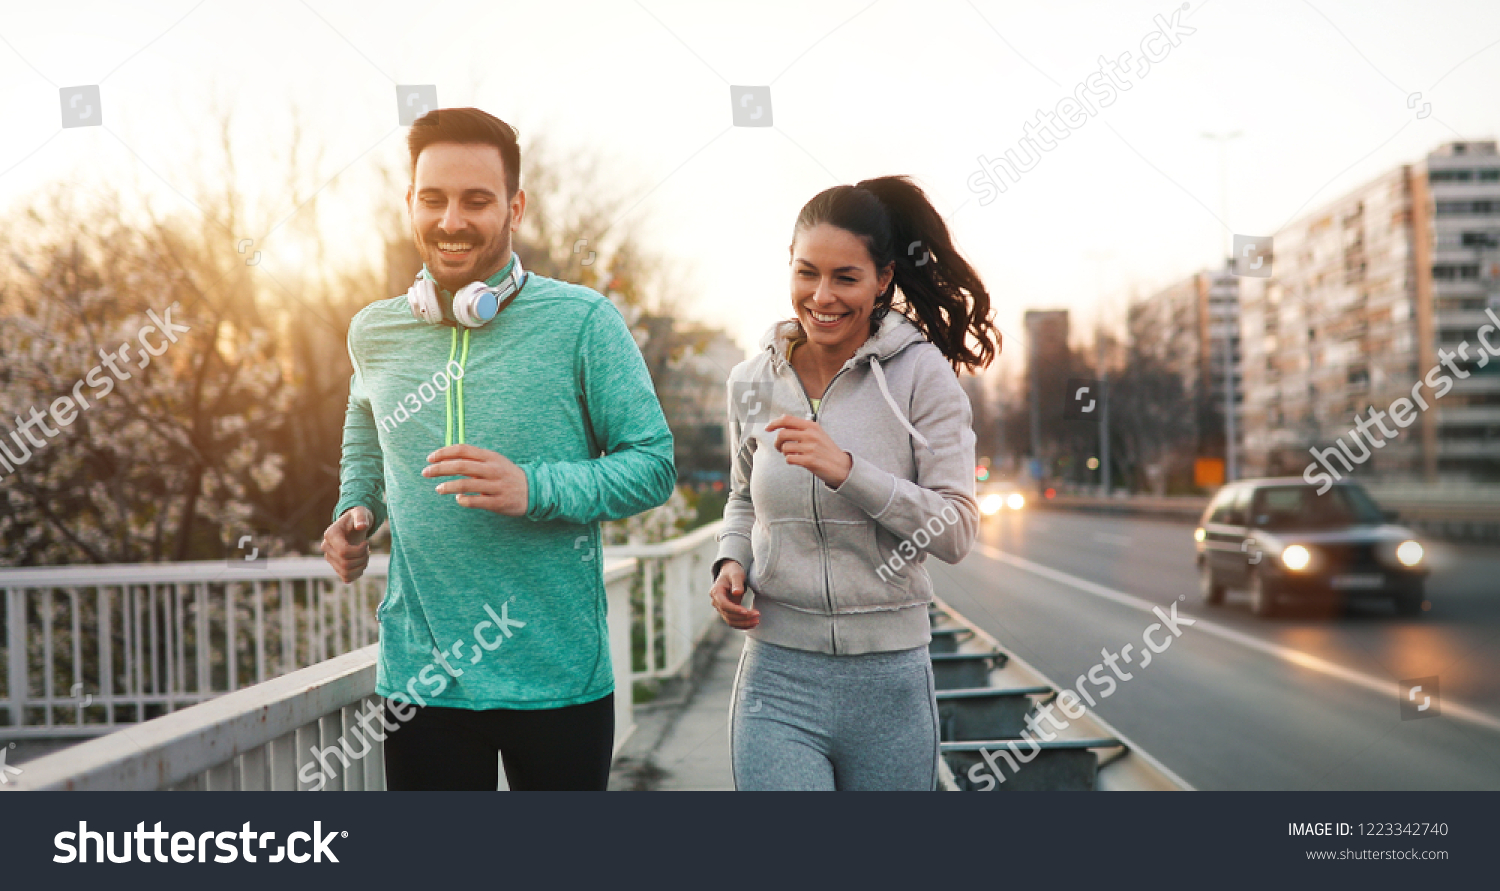 Friends fitness training together outdoors living active healthy #1223342740